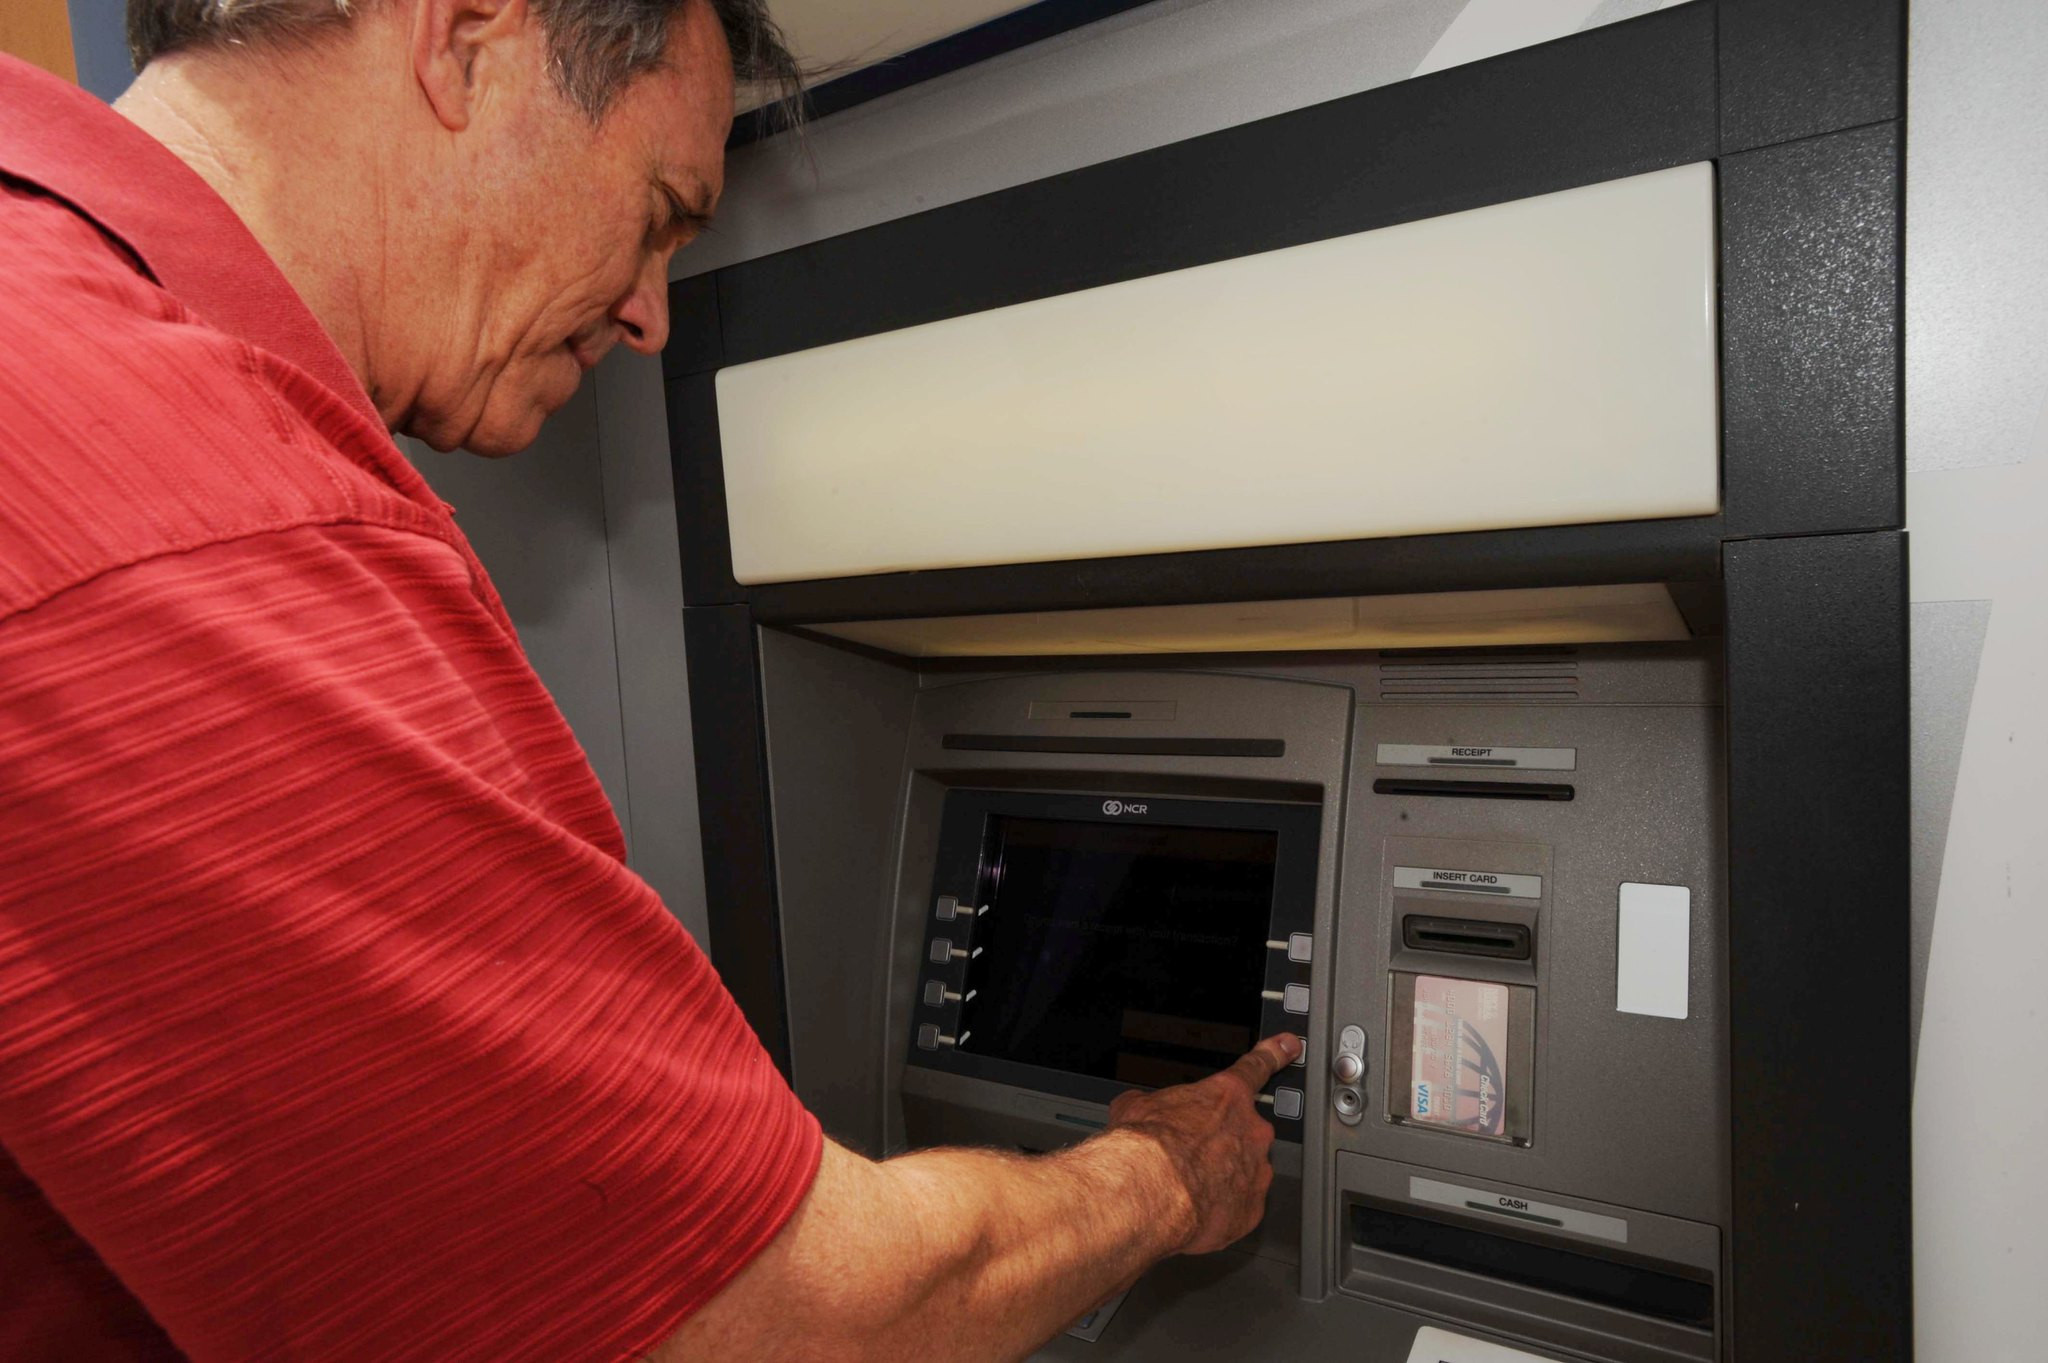 Retired Navy Vice Adm. Cutler Dawson, president and CEO of Navy Federal Credit Union, uses an NFCU ATM at Camp Lemonnier, Djibouti, May 22, 2010. (Staff Sgt. Robert Barnett/Air Force)